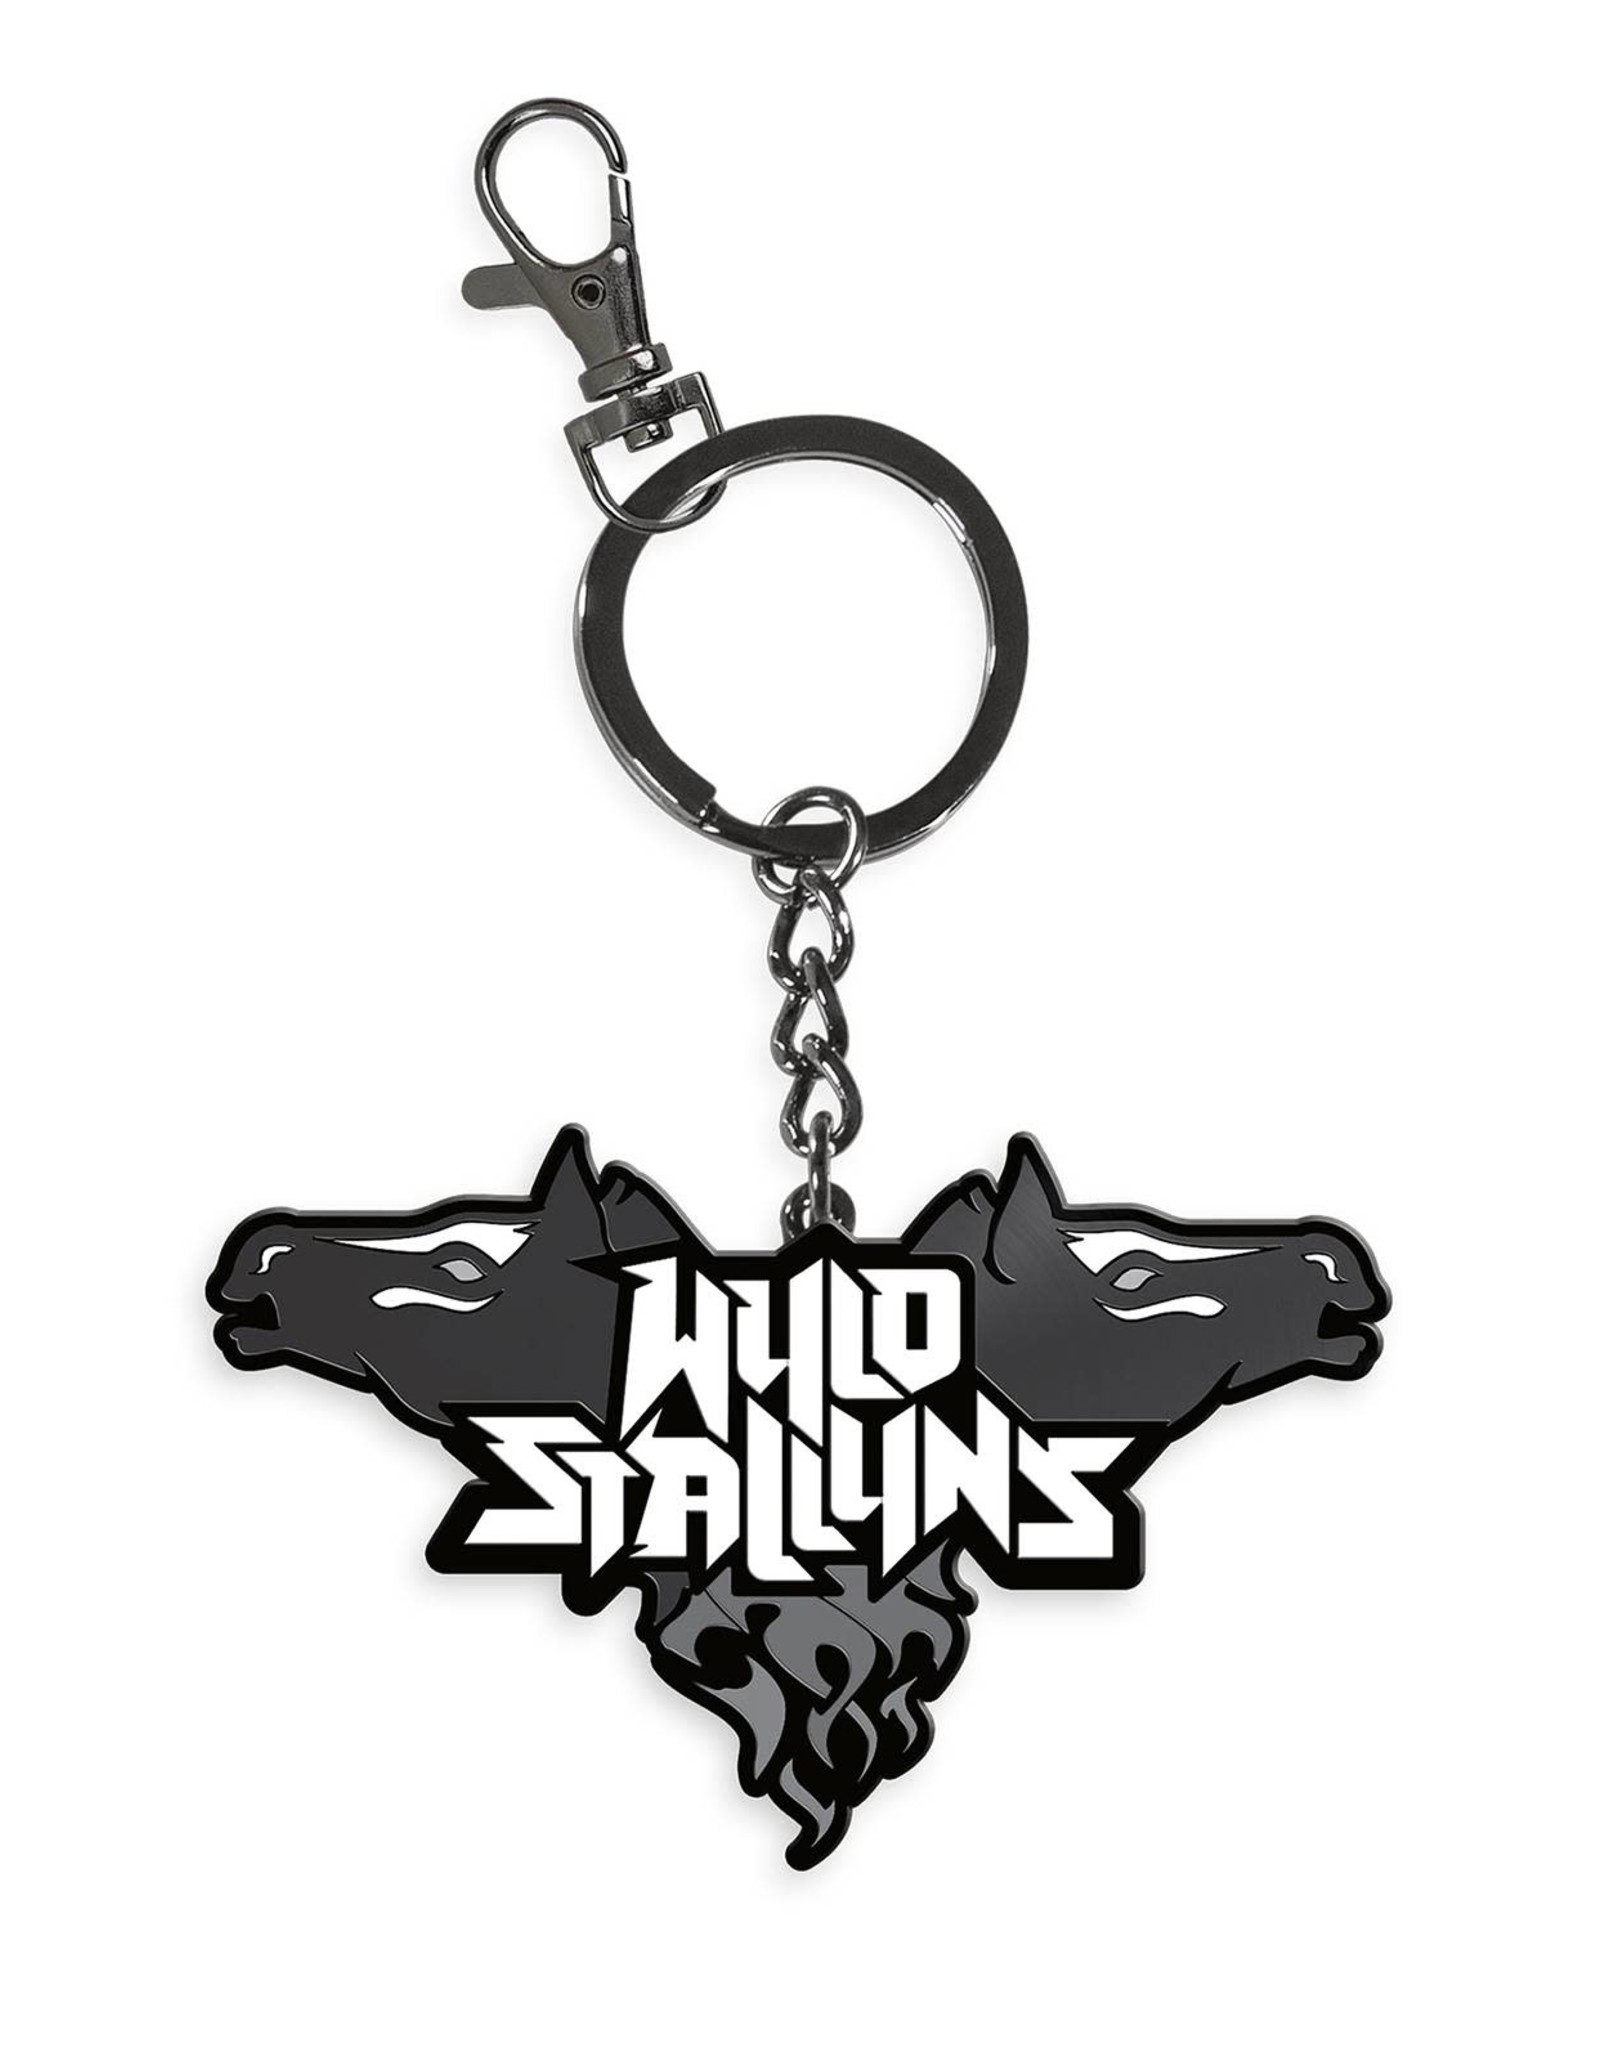 General BILL & TED FACE MUSIC WYLD STALLYNS KEYCHAIN